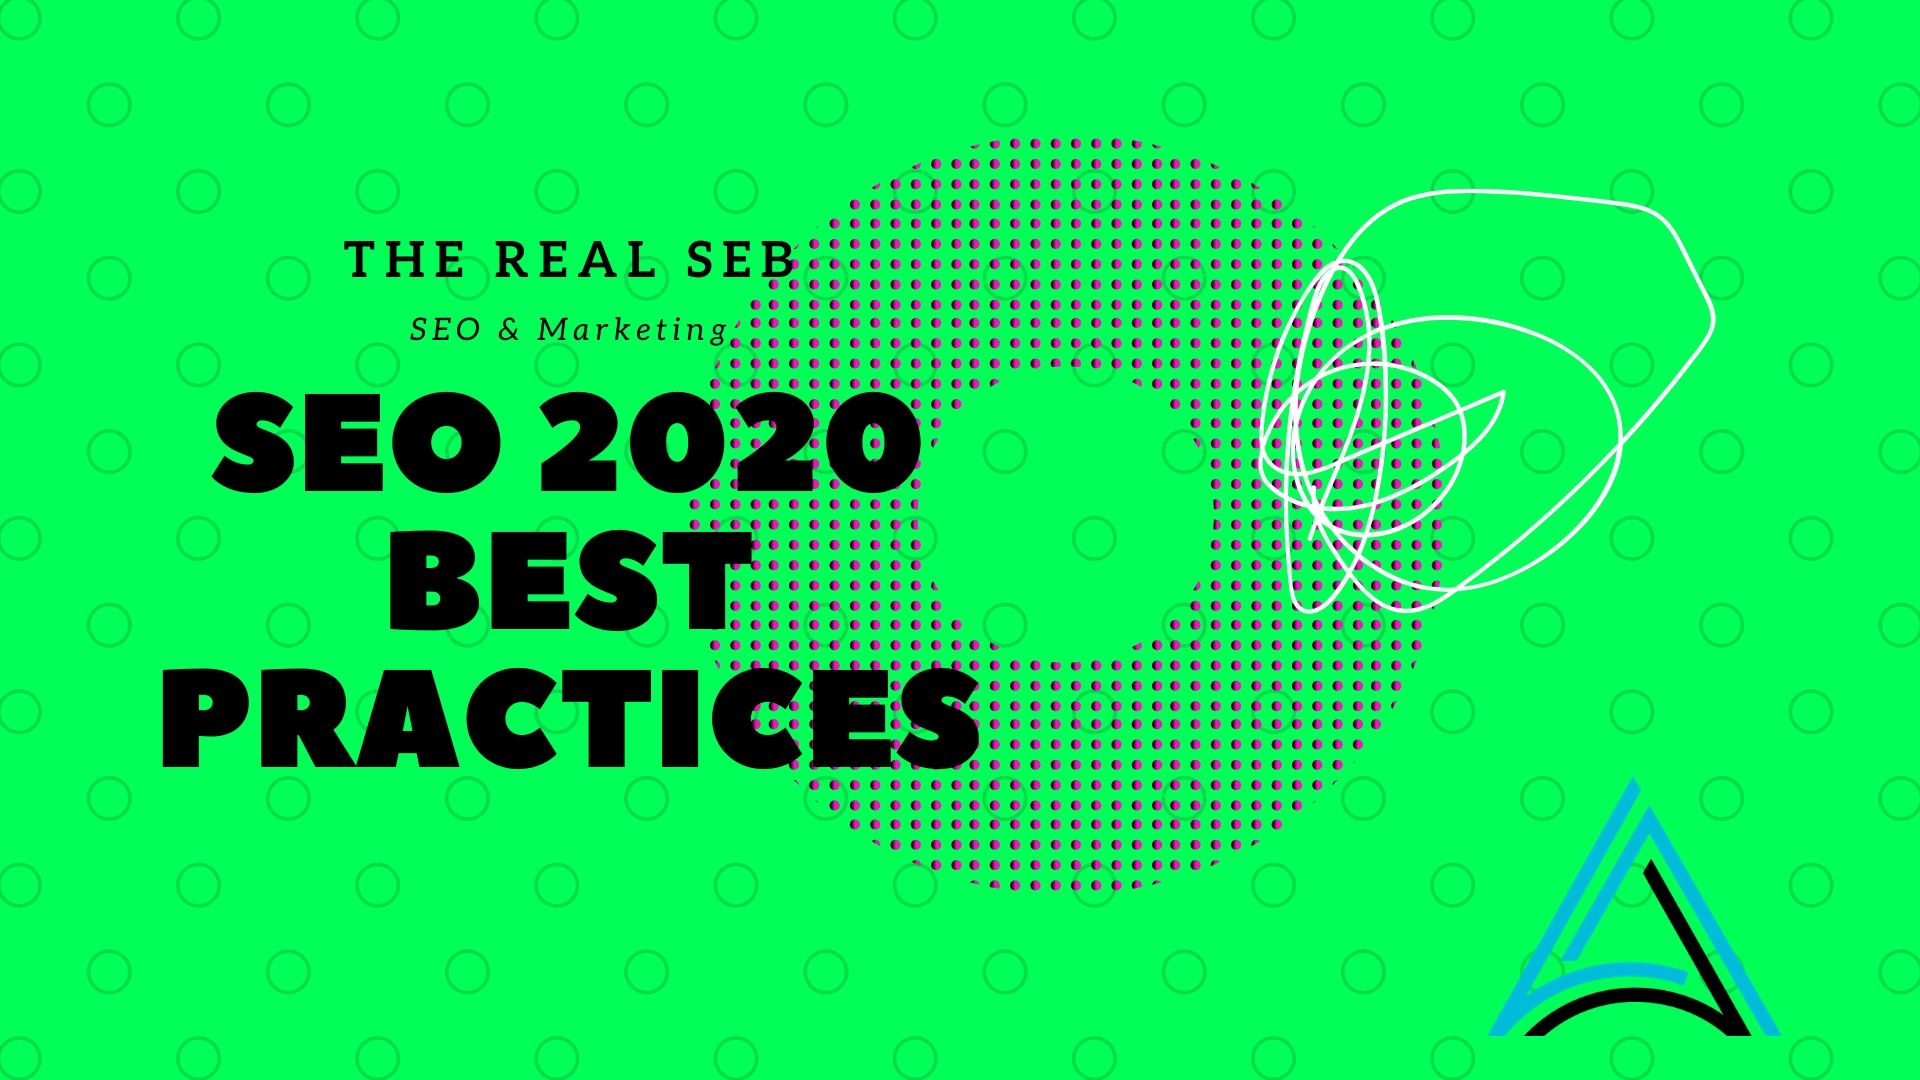 seo 2020 best practices